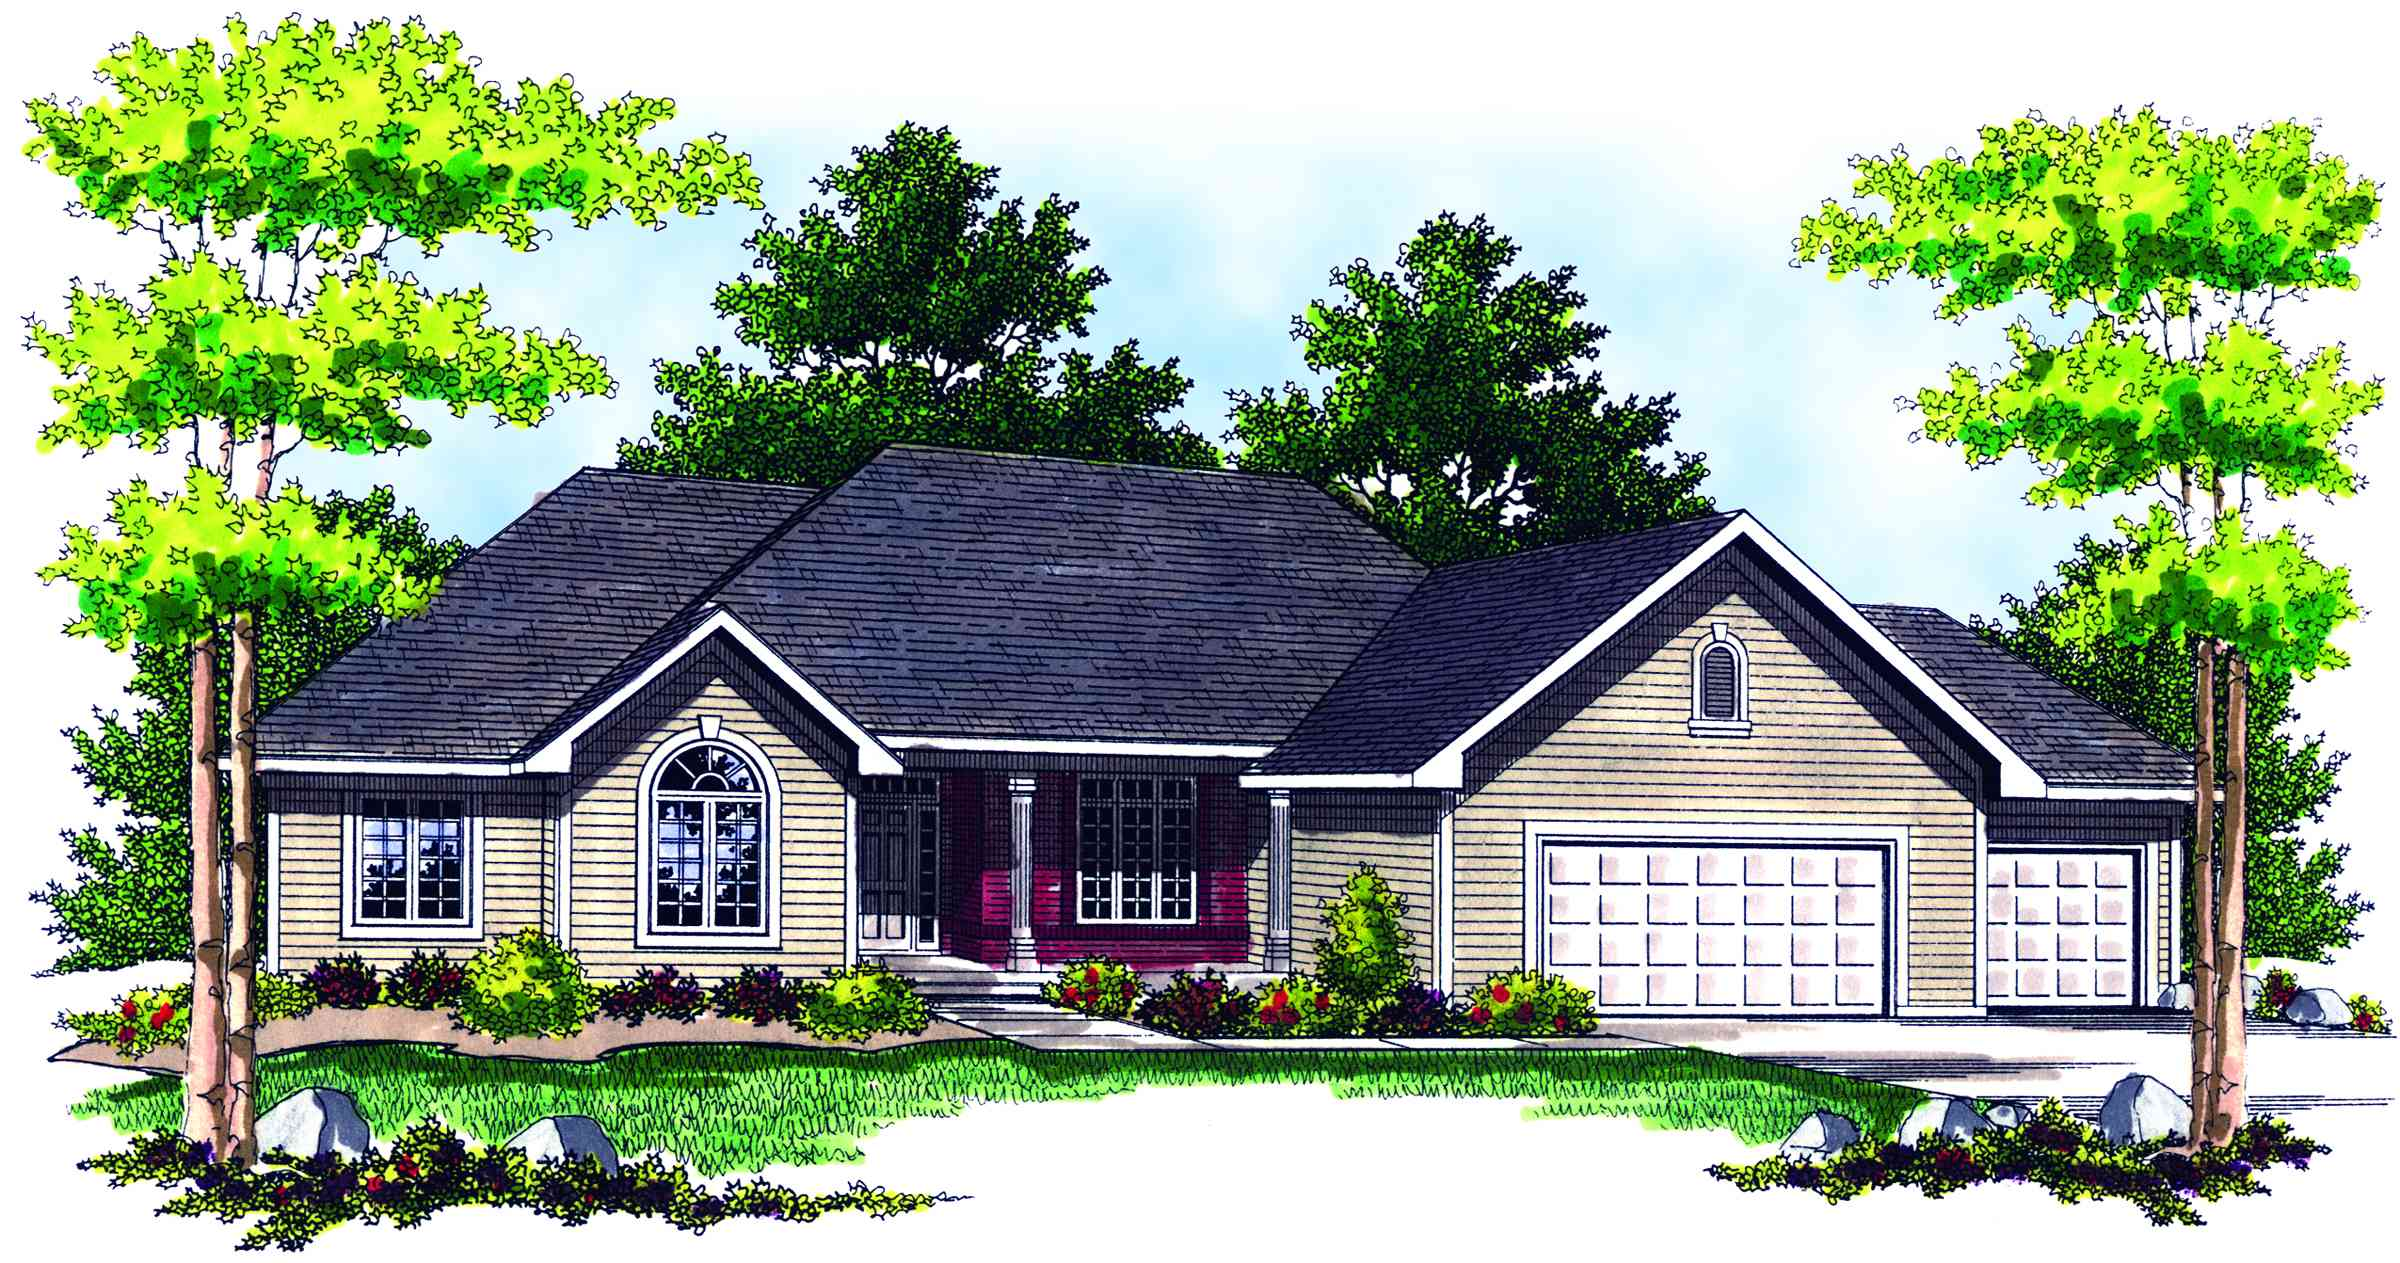 Traditional ranch home plan 89132ah architectural for Traditional farmhouse plans